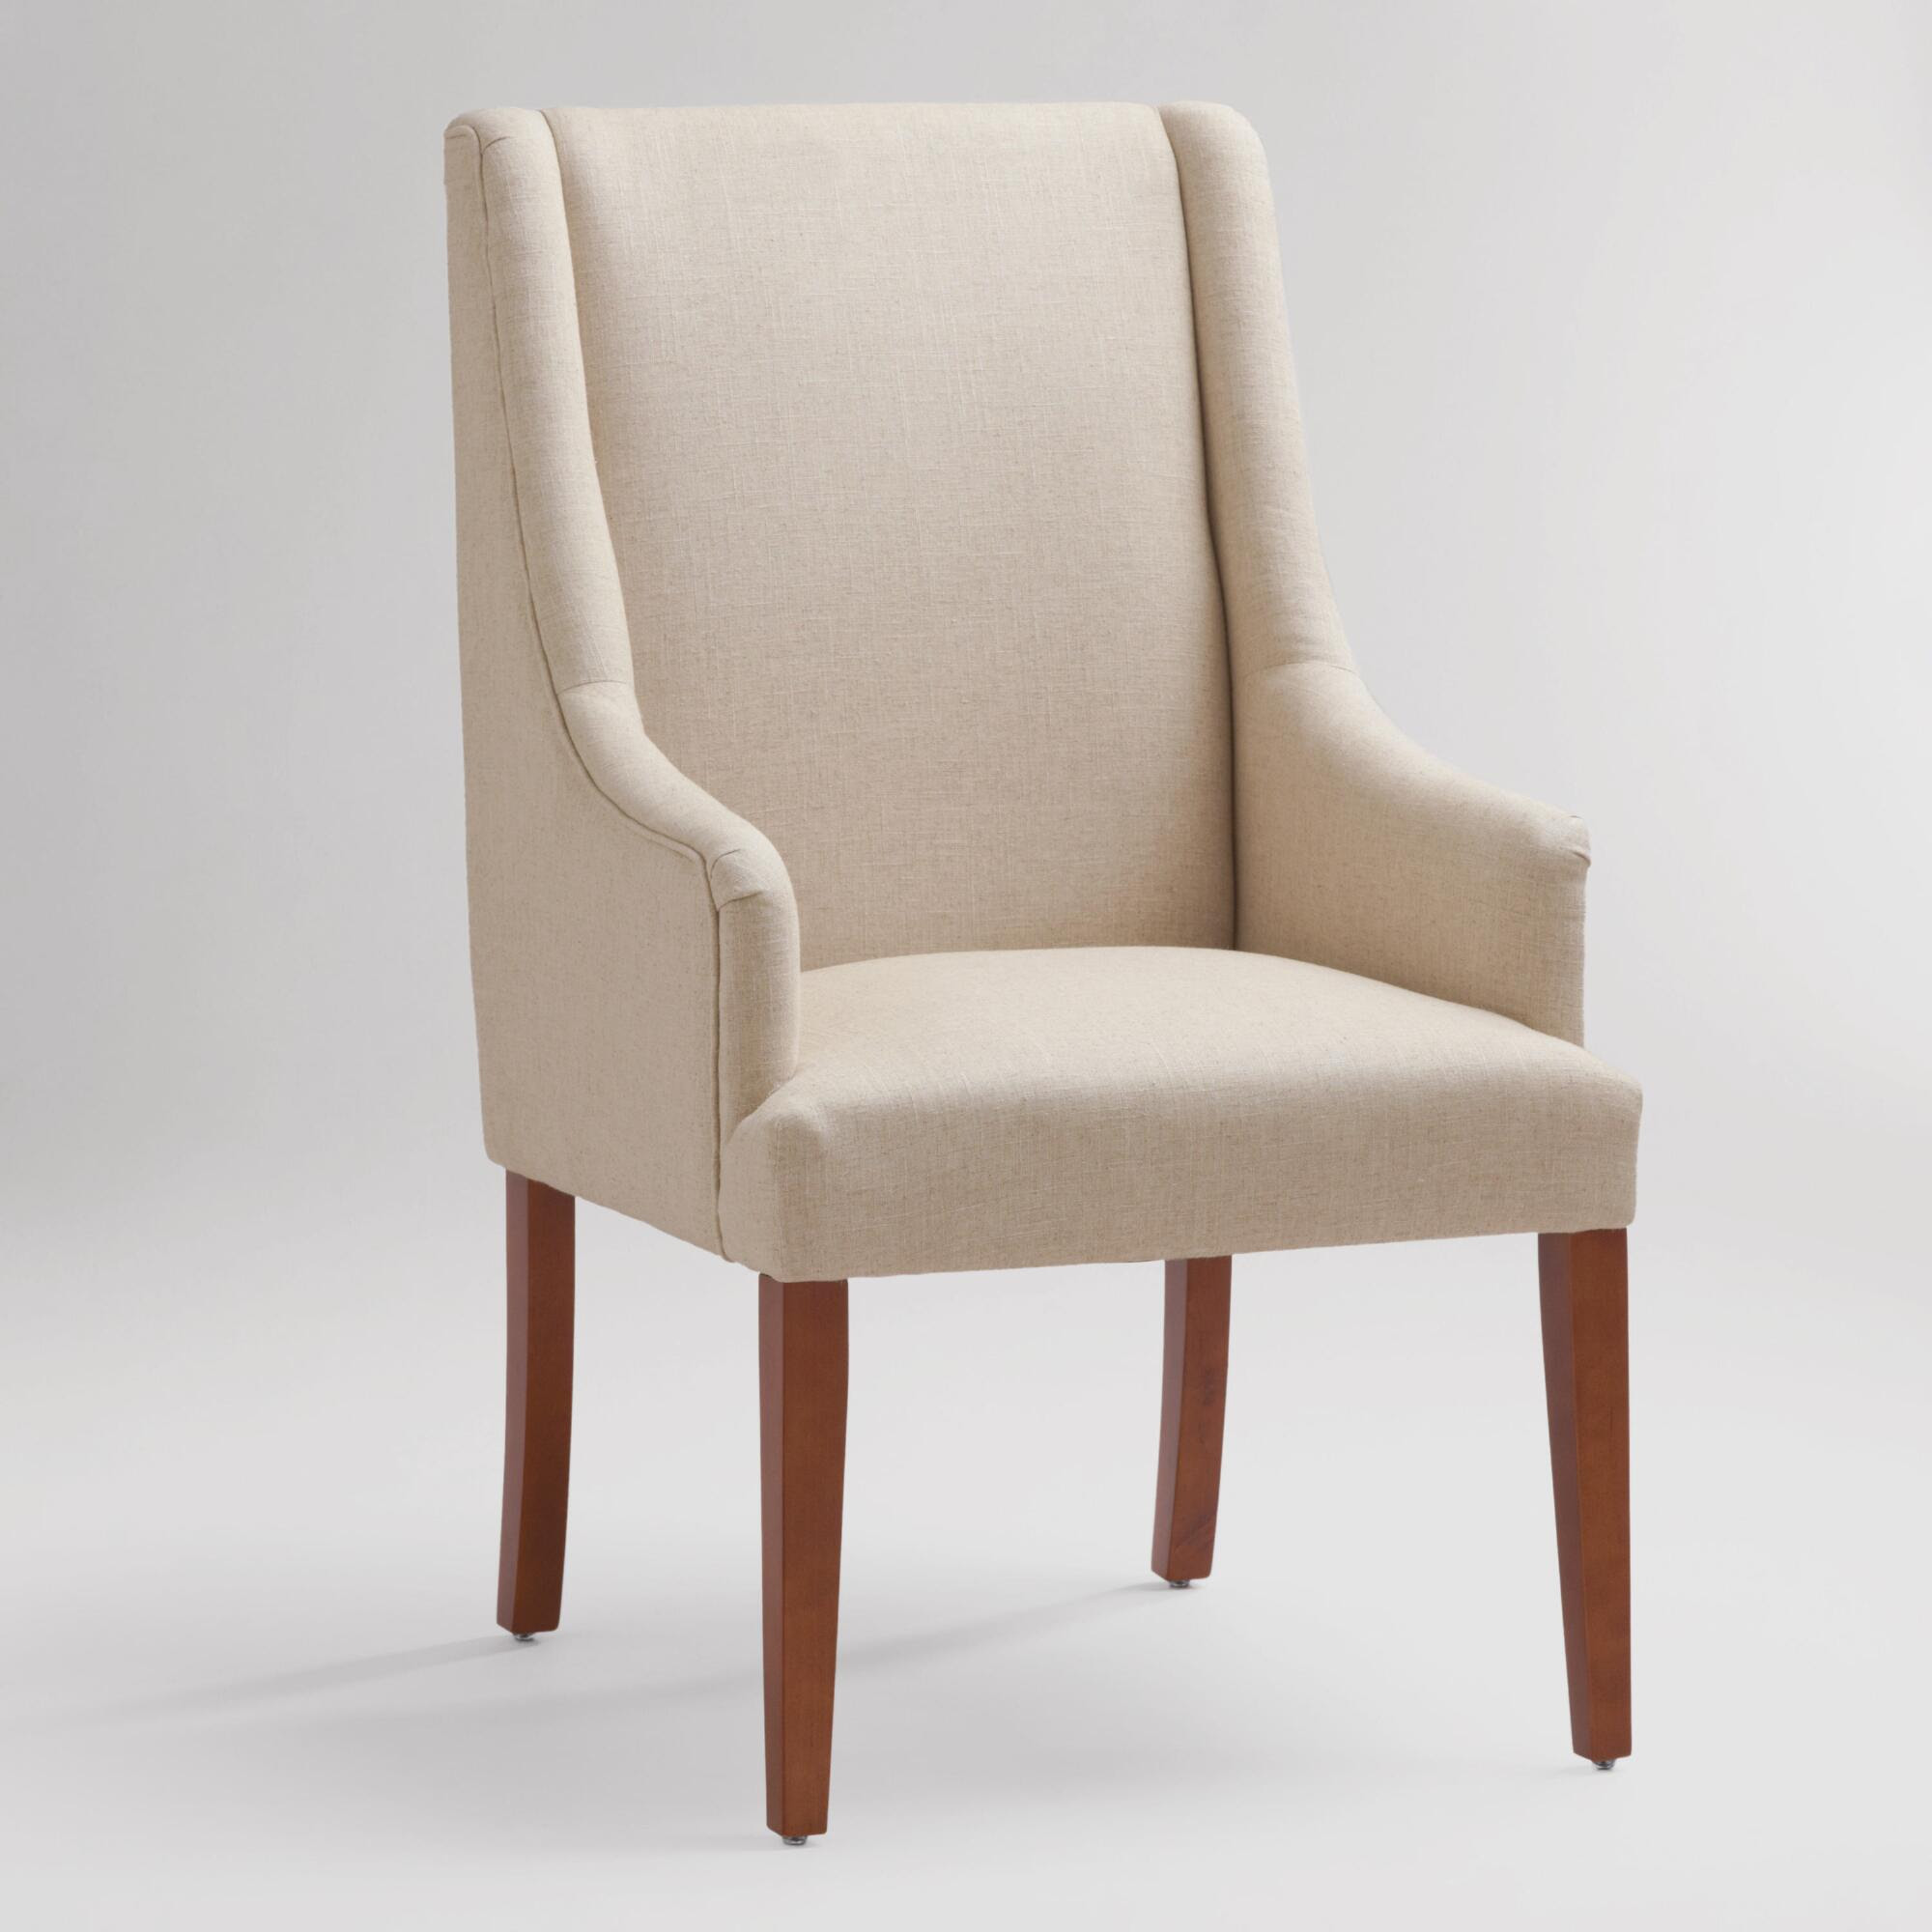 Slipcovers For Dining Chairs Without Arms - interior ...